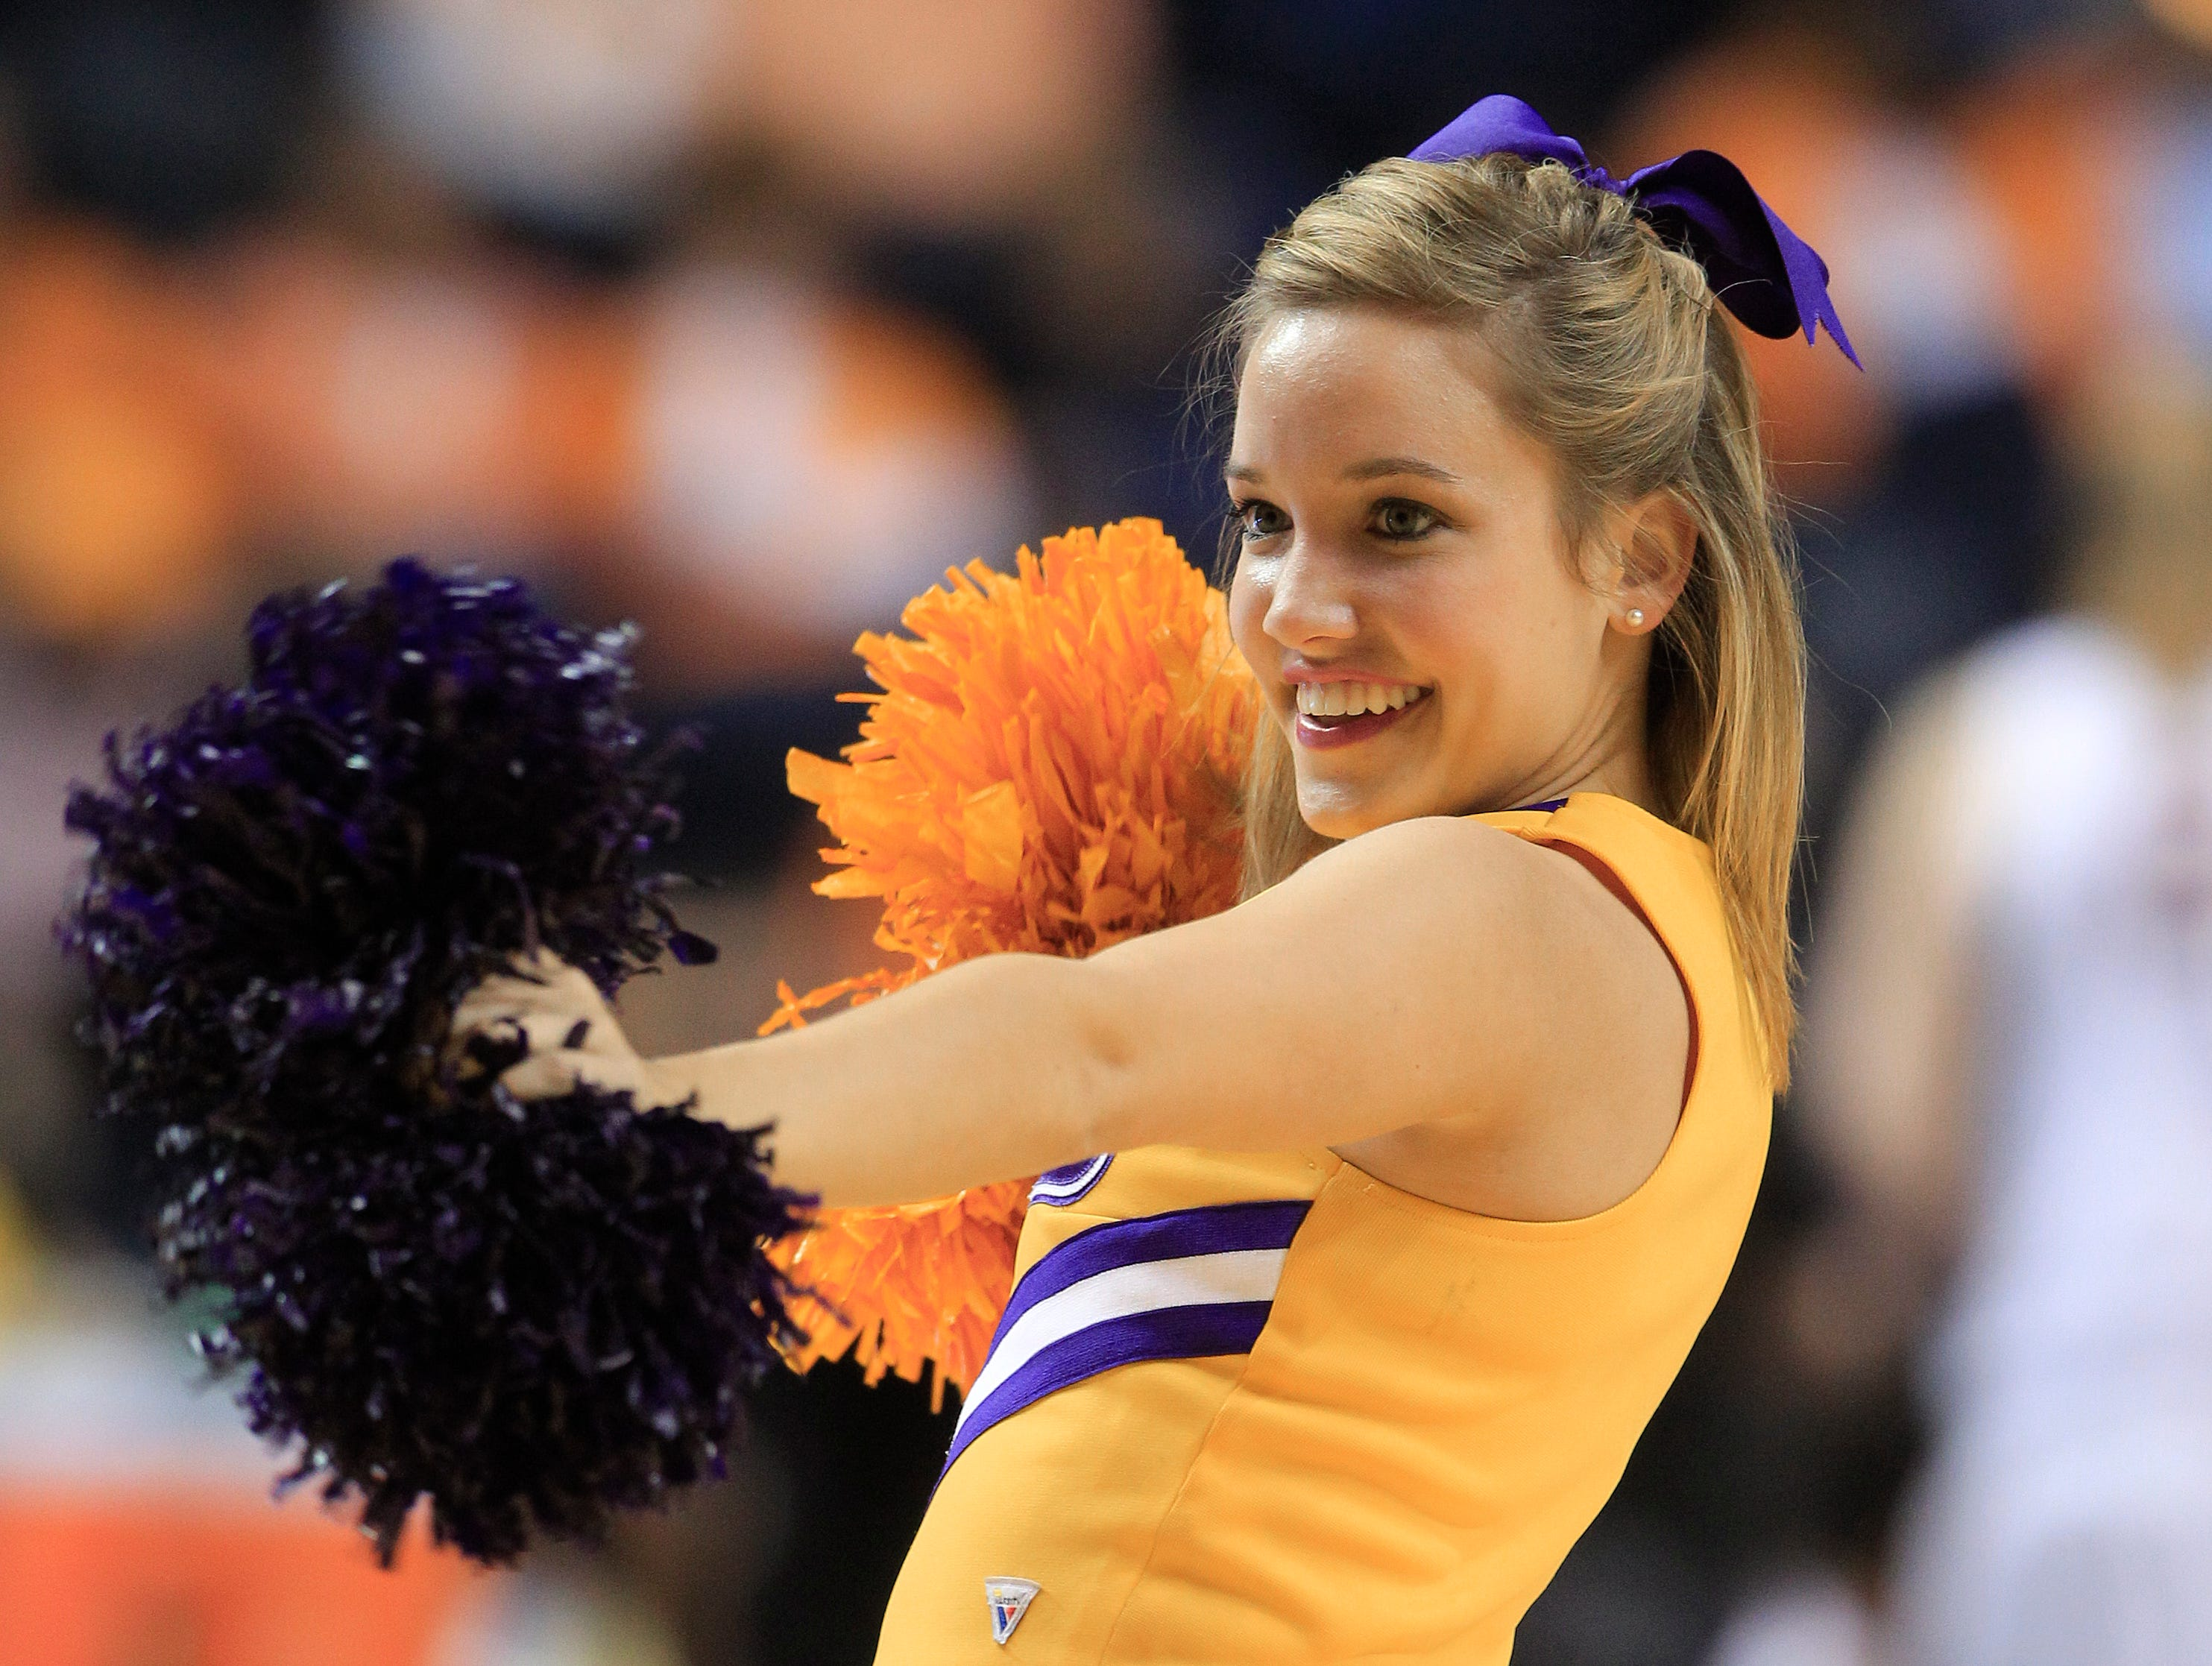 An LSU cheerleader performs in an NCAA college basketball game against Arkansas at the women's Southeastern Conference tournament on Friday, March 2, 2012, in Nashville, Tenn. LSU won 41-40.(AP Photo/Mark Humphrey)